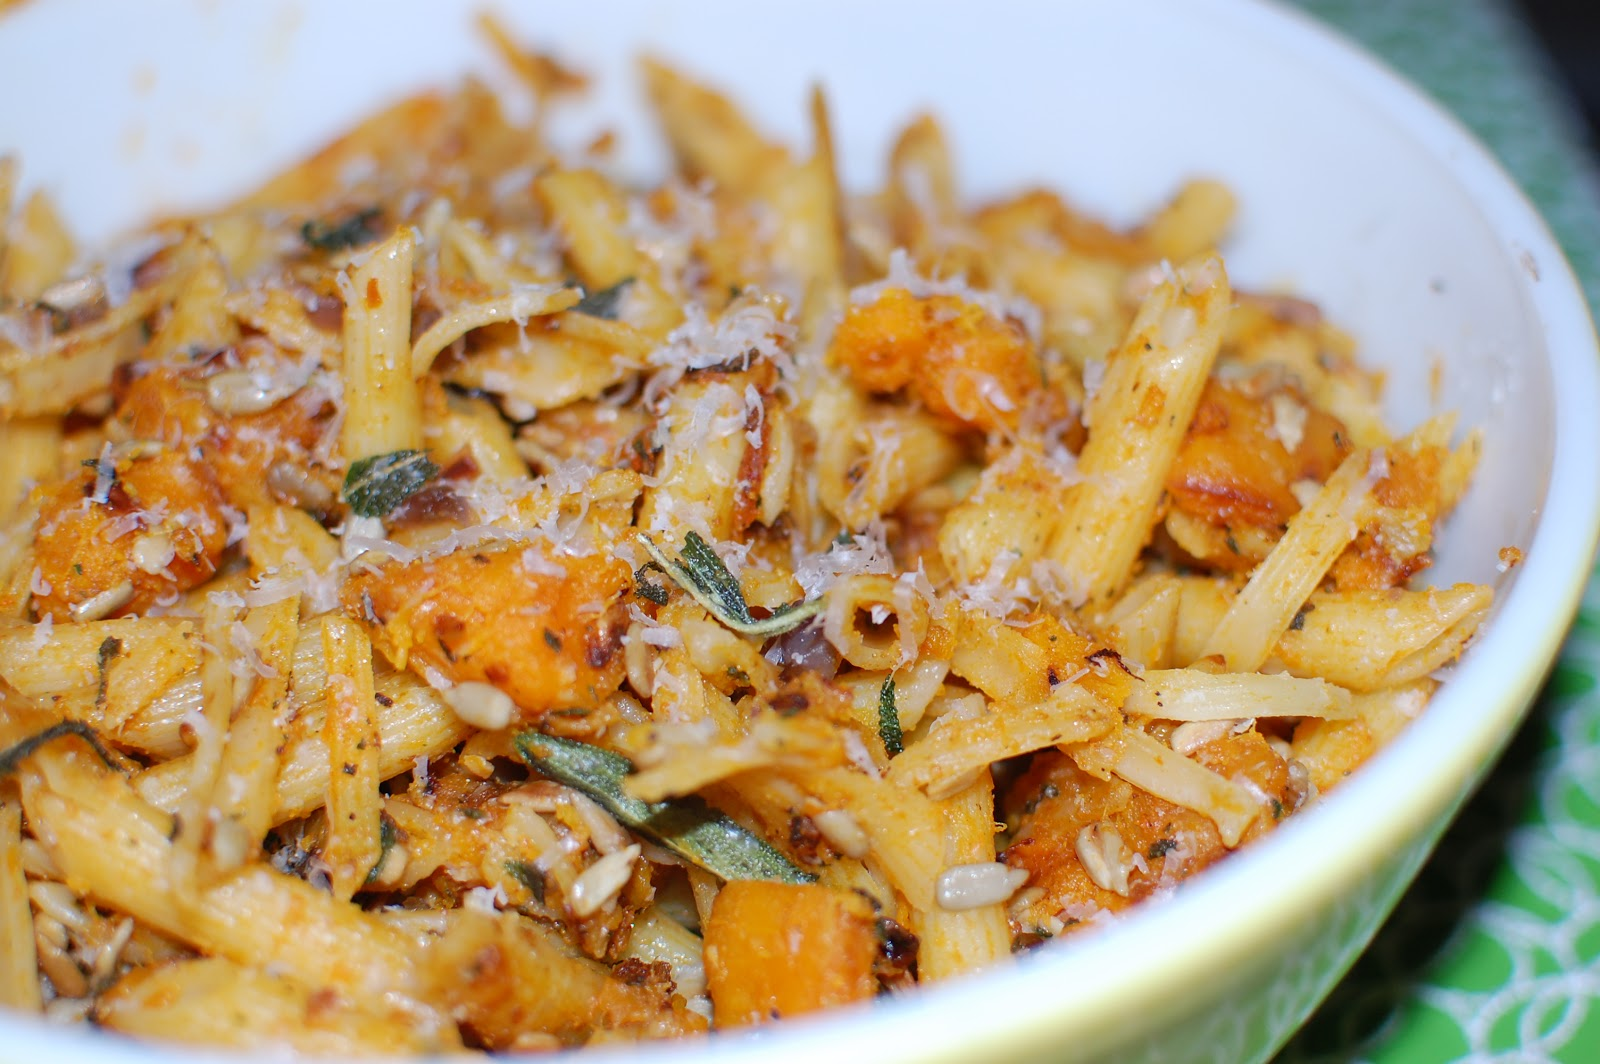 Section 89: Pasta Pan-Fried with Butternut Squash and Fried Sage